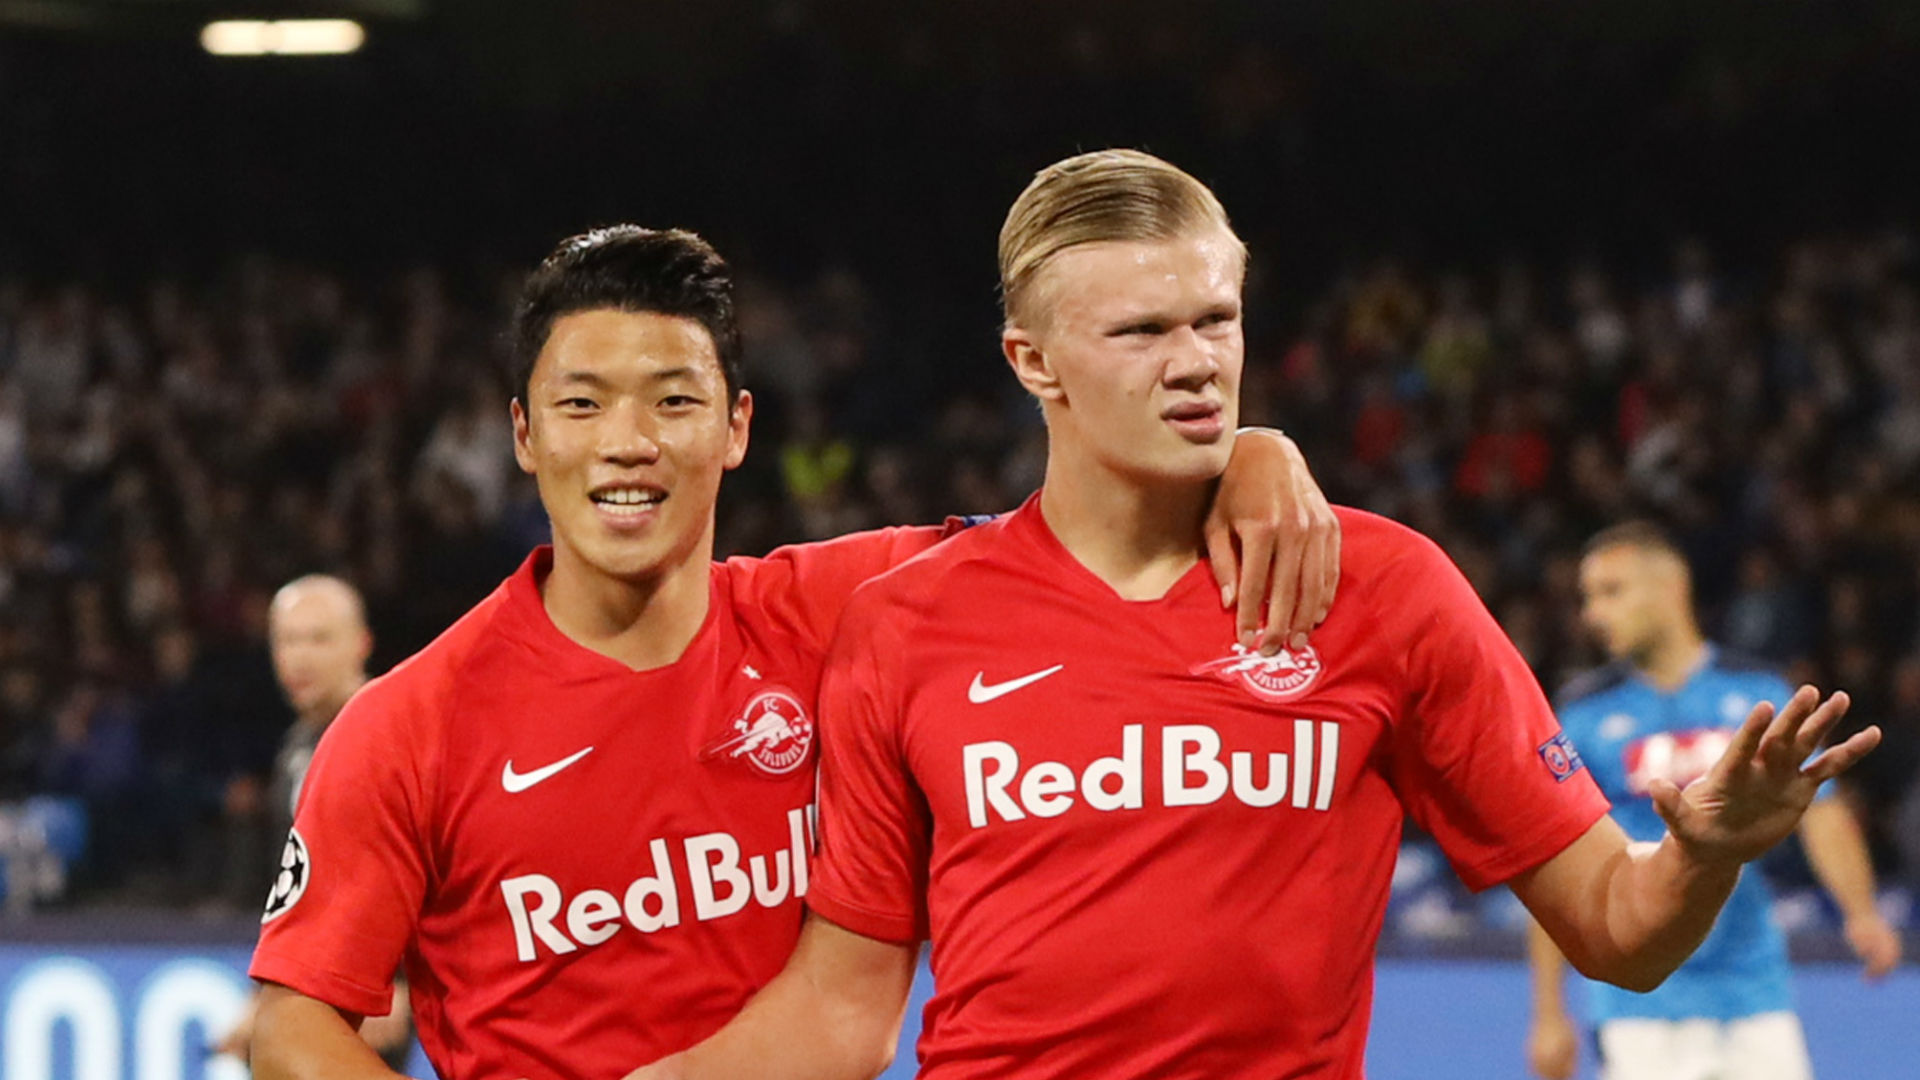 Haaland targets historic goal as Salzburg aim to deny Liverpool - Champions League in Opta numbers